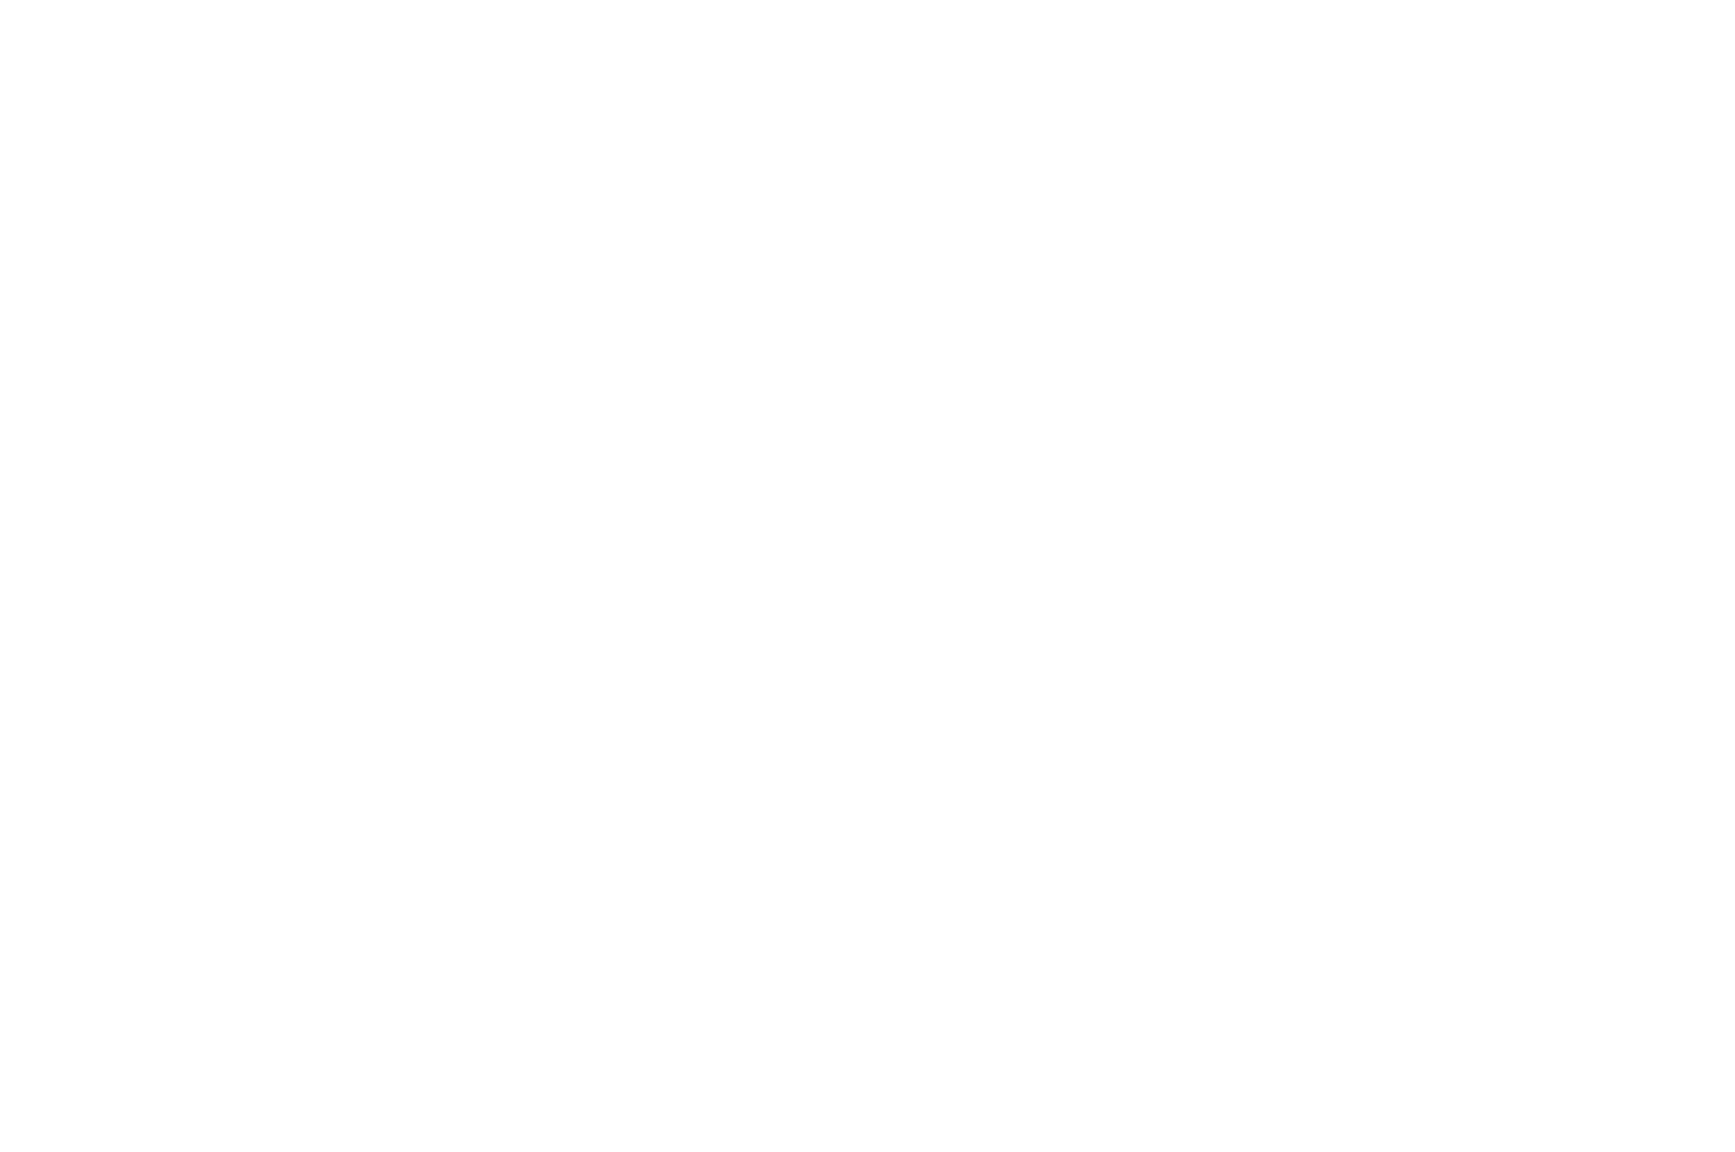 FINALIST - Cinema City International Film Festival Screenplay Competition